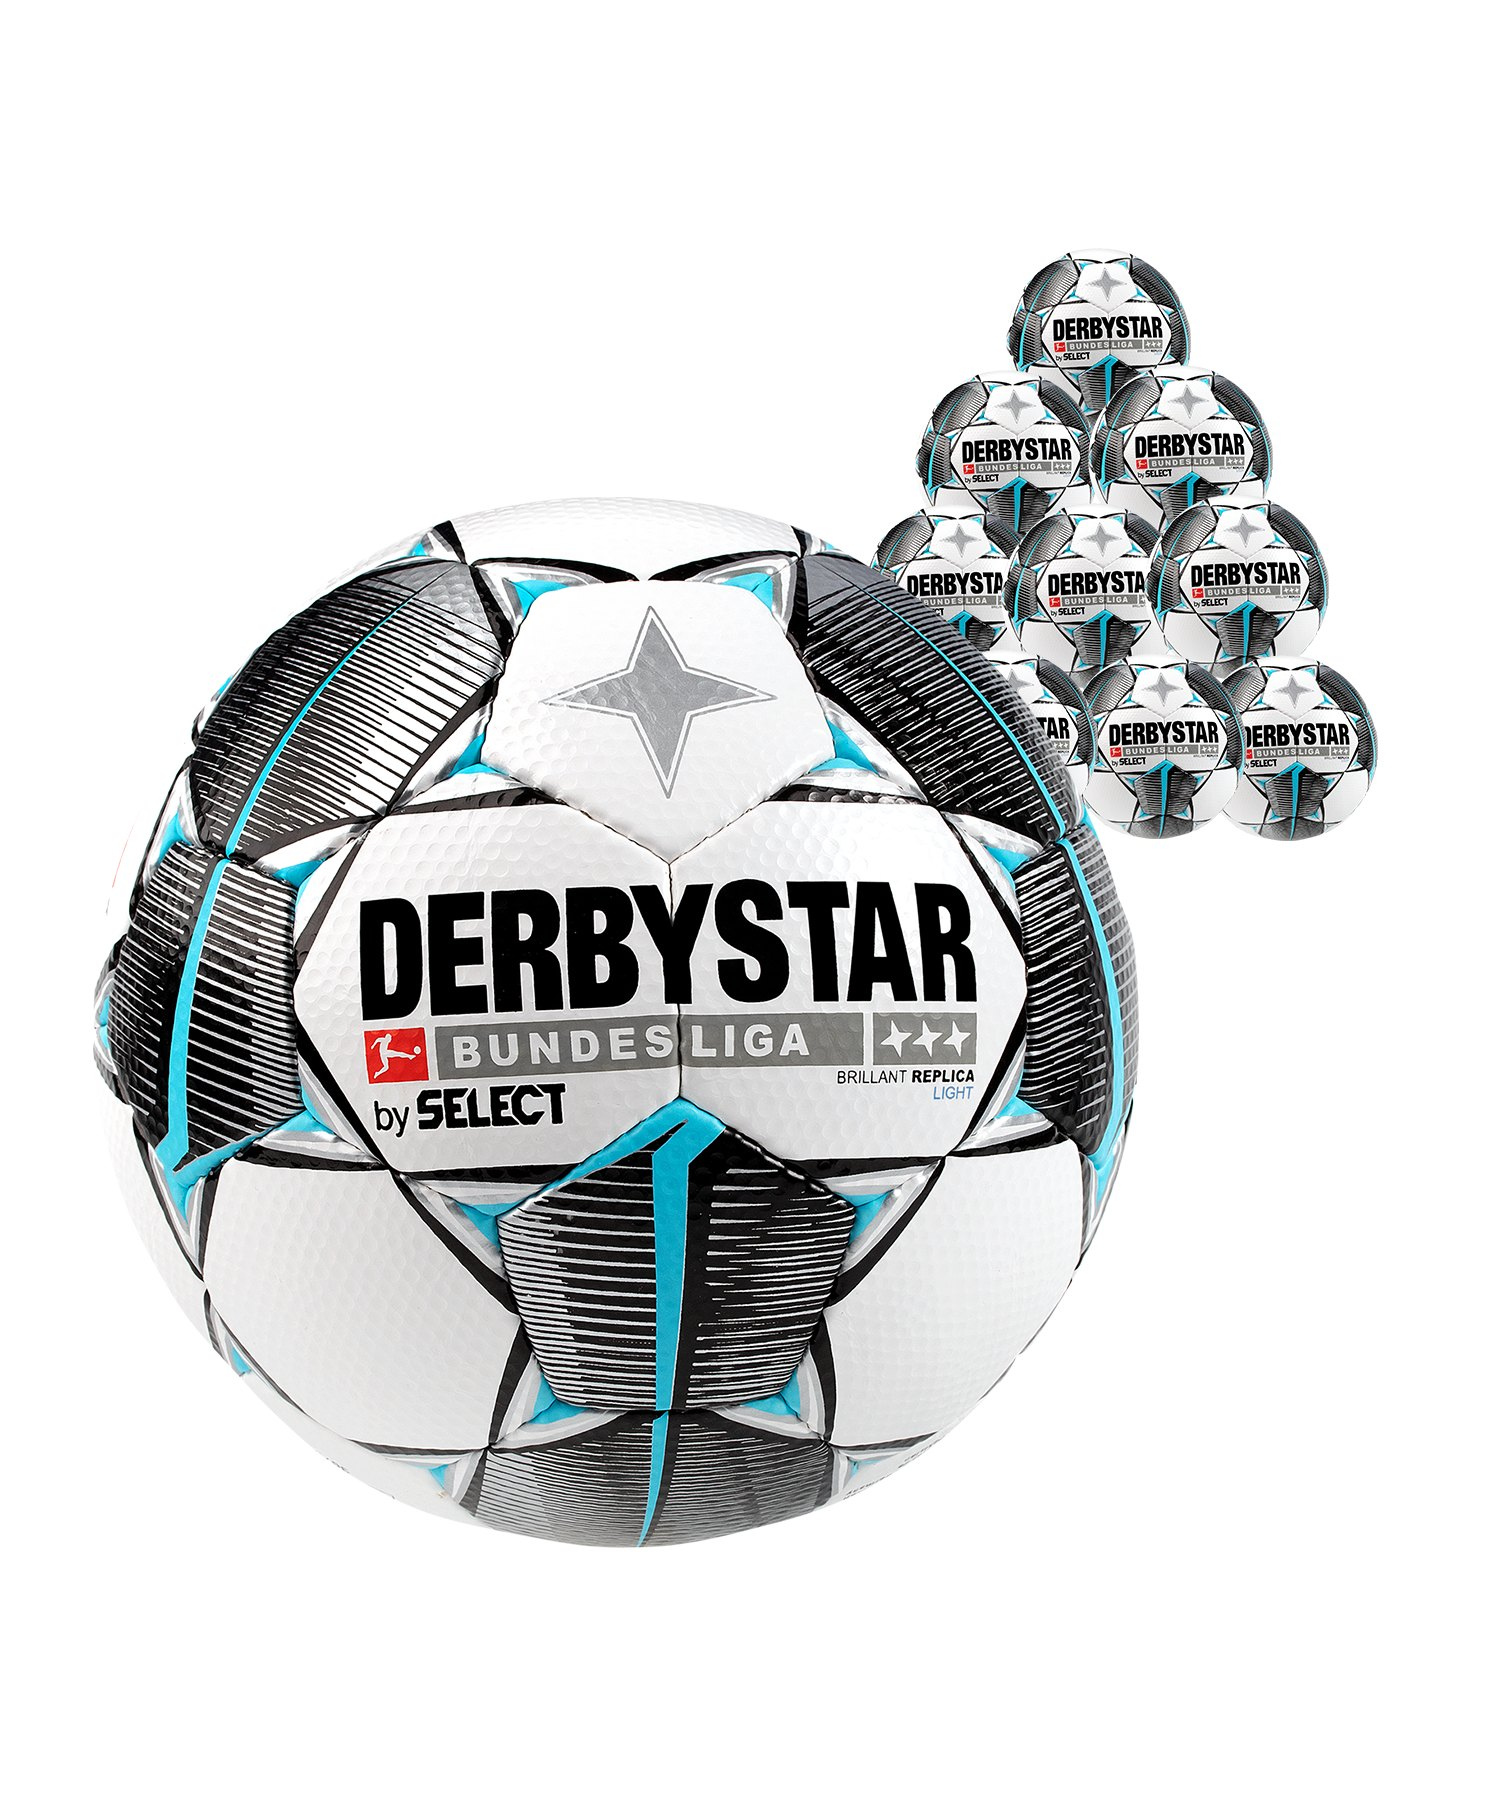 Derbystar Bundesliga Bril. Replica Light 50x Gr.5 Weiss F019 - weiss